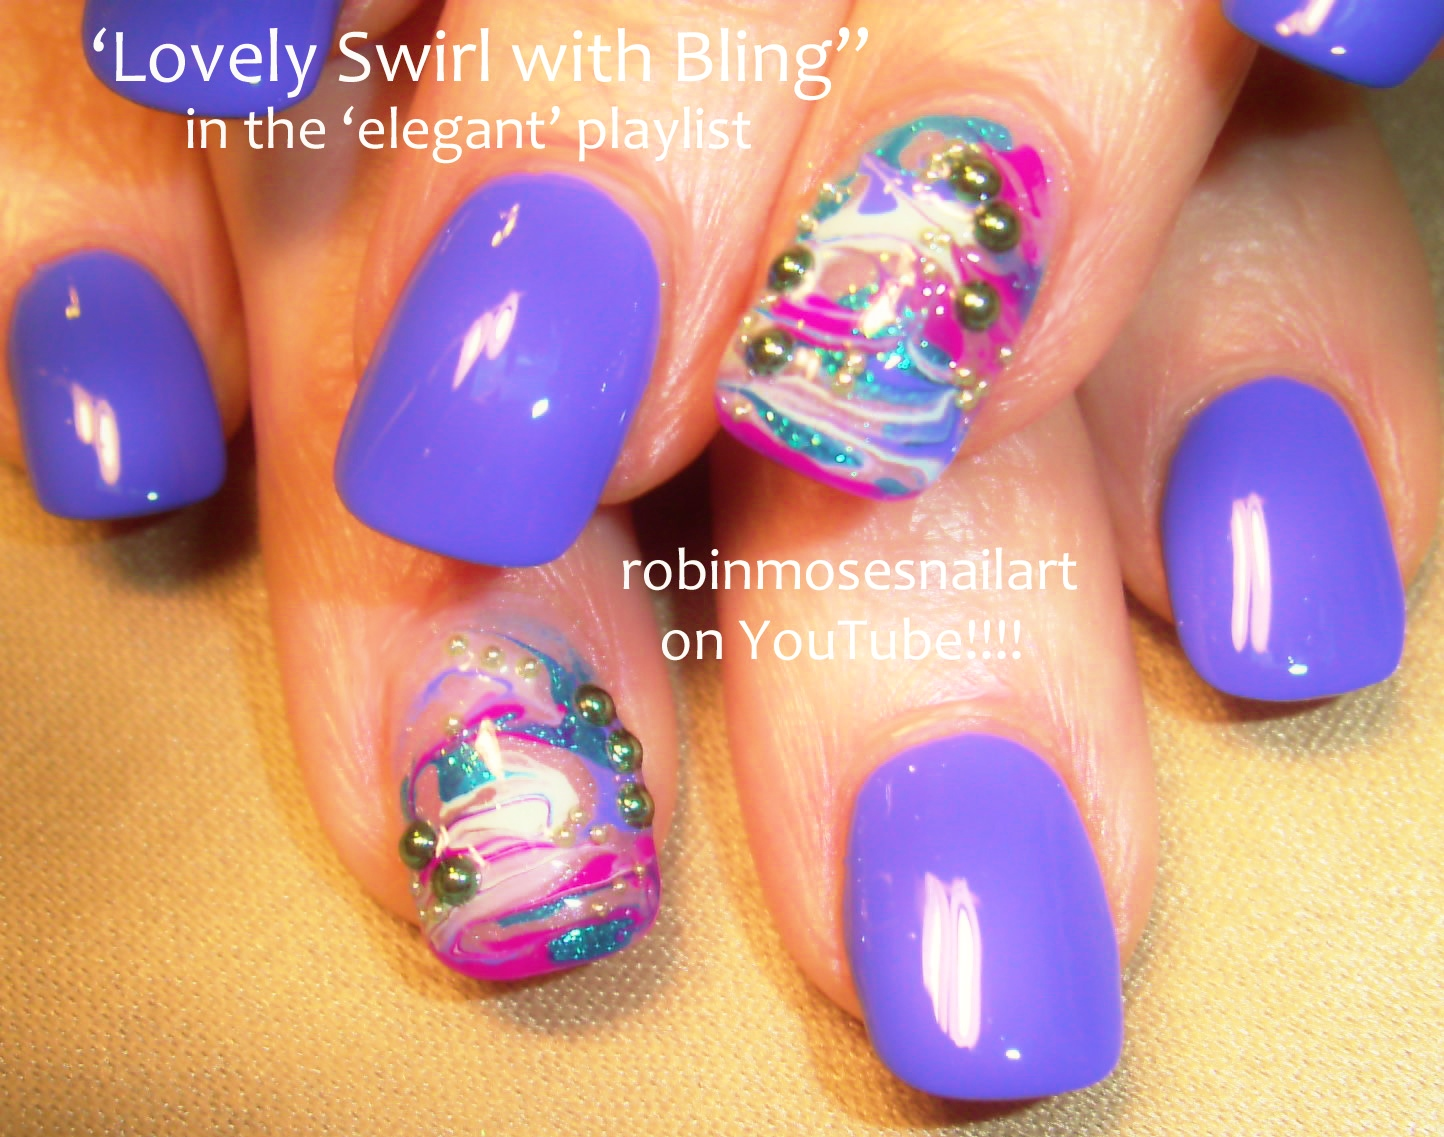 Robin moses nail art black and white no water marble water marble nail design marble nails marbling nails how to marble prinsesfo Gallery